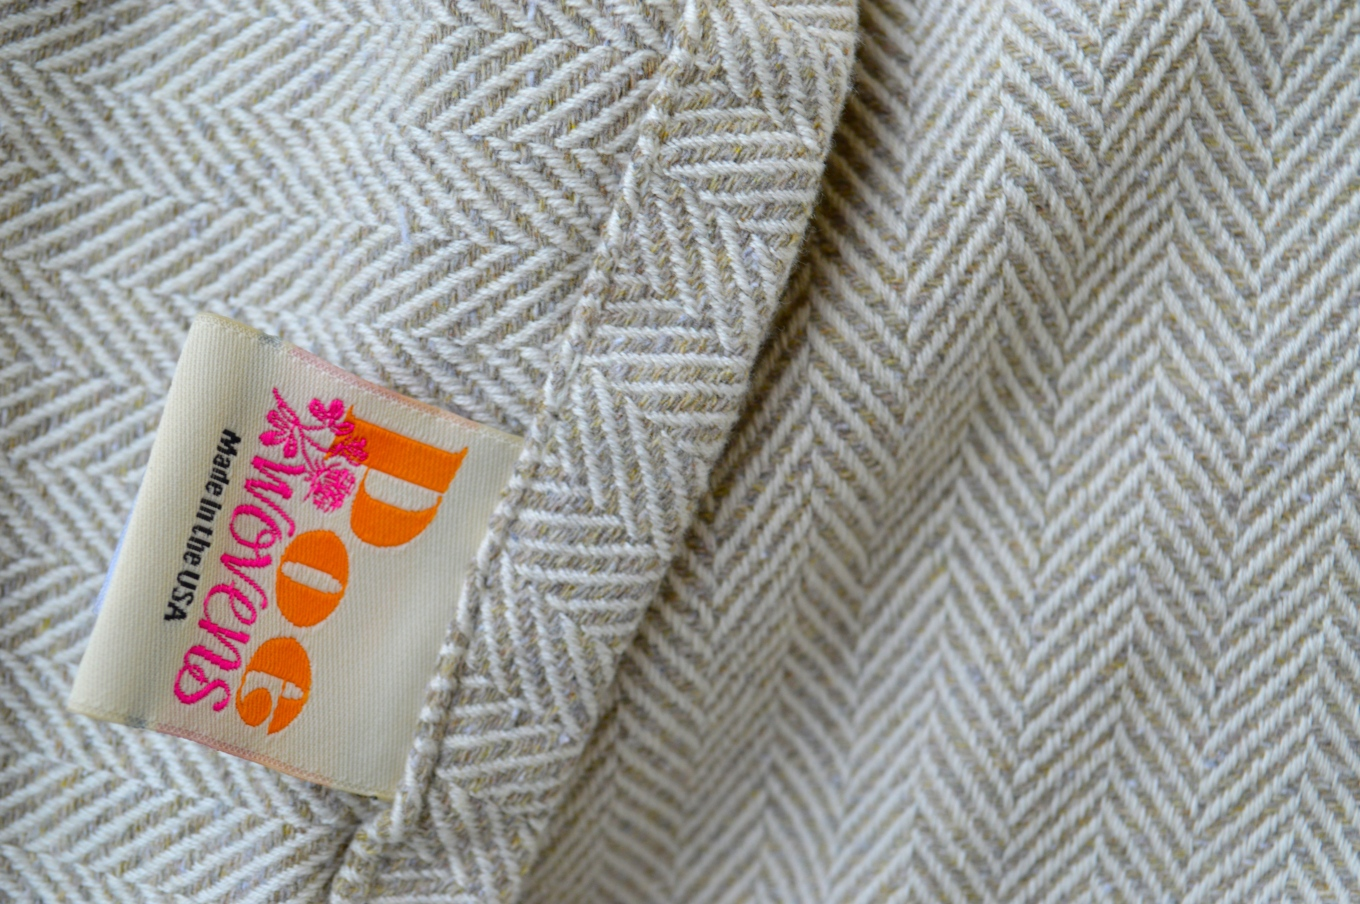 Close up Image of woven wrap with herringbone weave. The wrap is a neutral oatmeal color but comprised of colors of brown, blue, pink, and yellow against a off white to cream colored warp. The company tag reads Poe Wovens and is visible in the image.